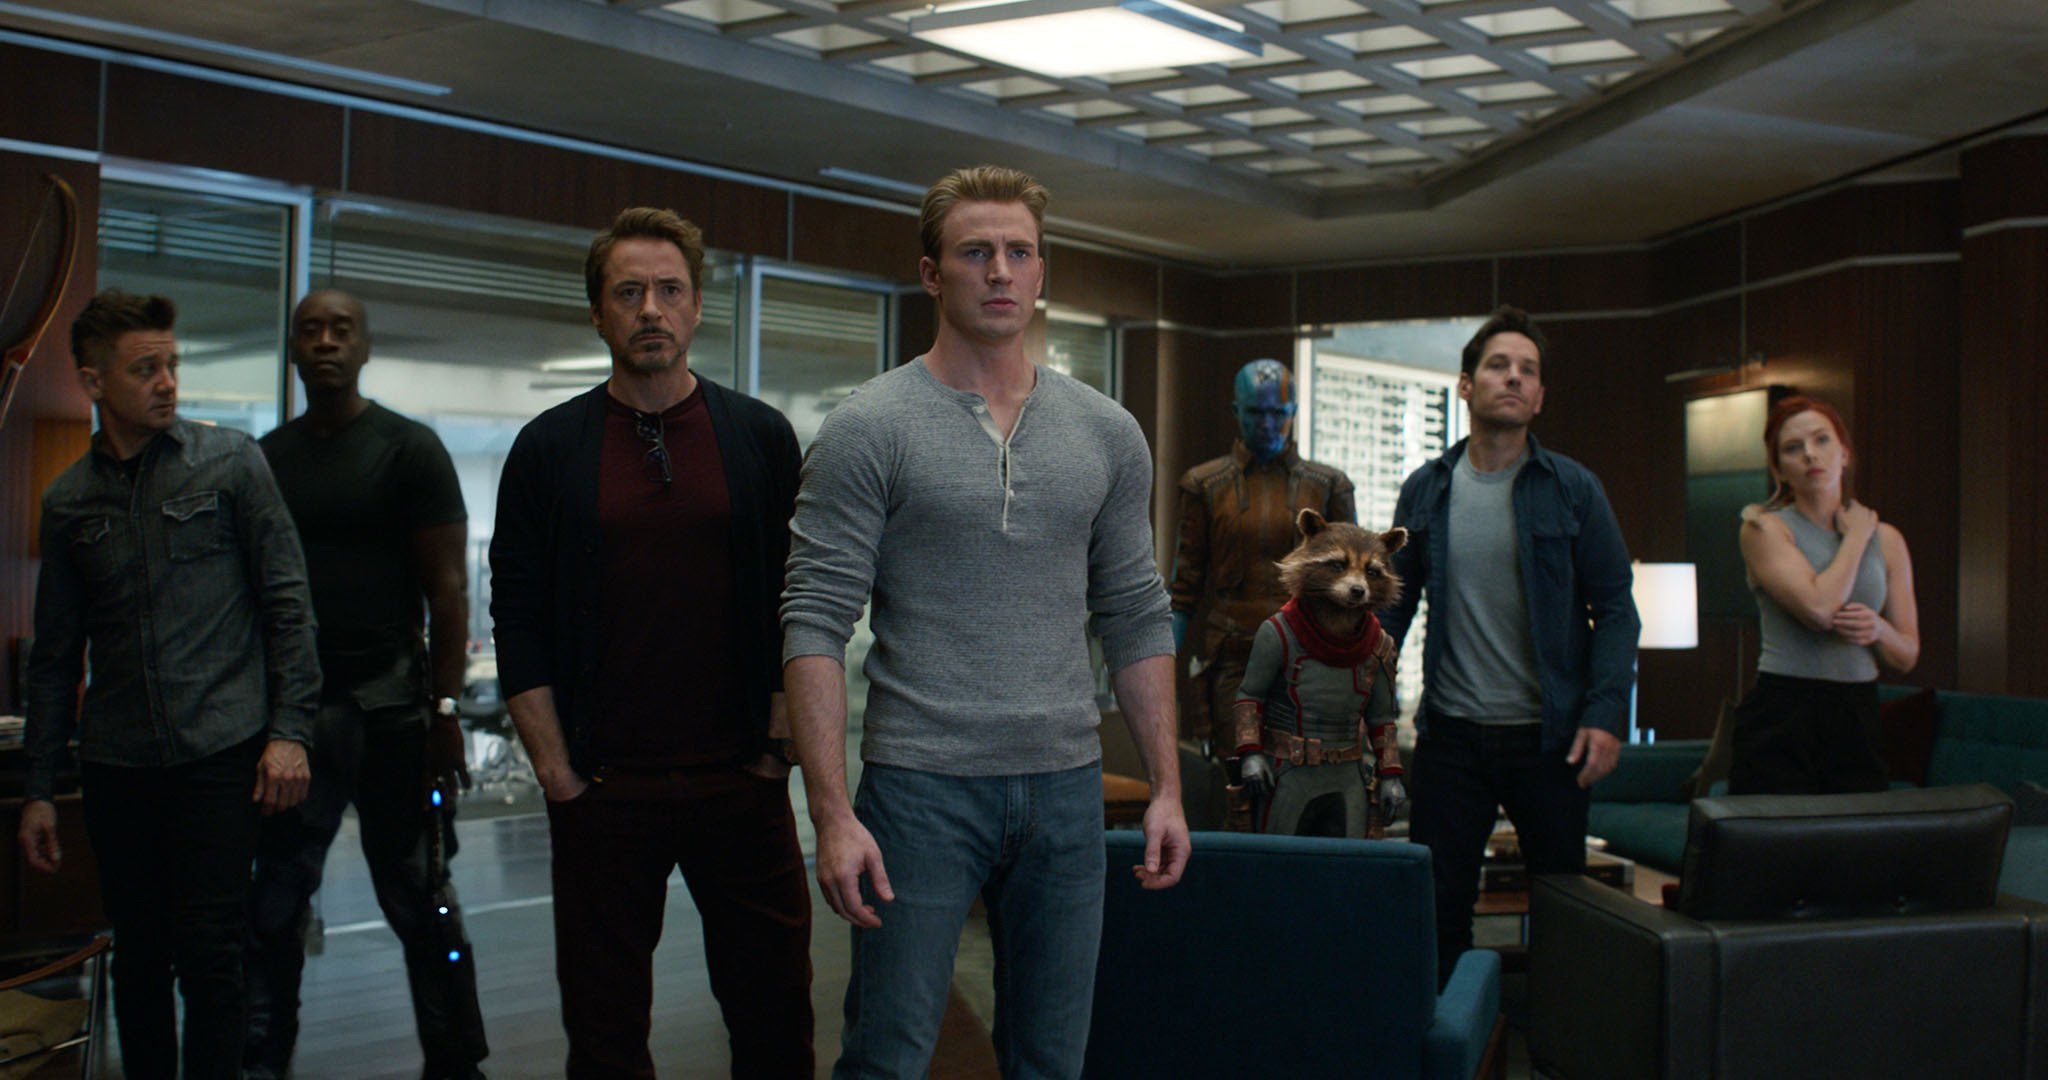 Avengers: Endgame passes Titanic to become second highest grossing film of all time